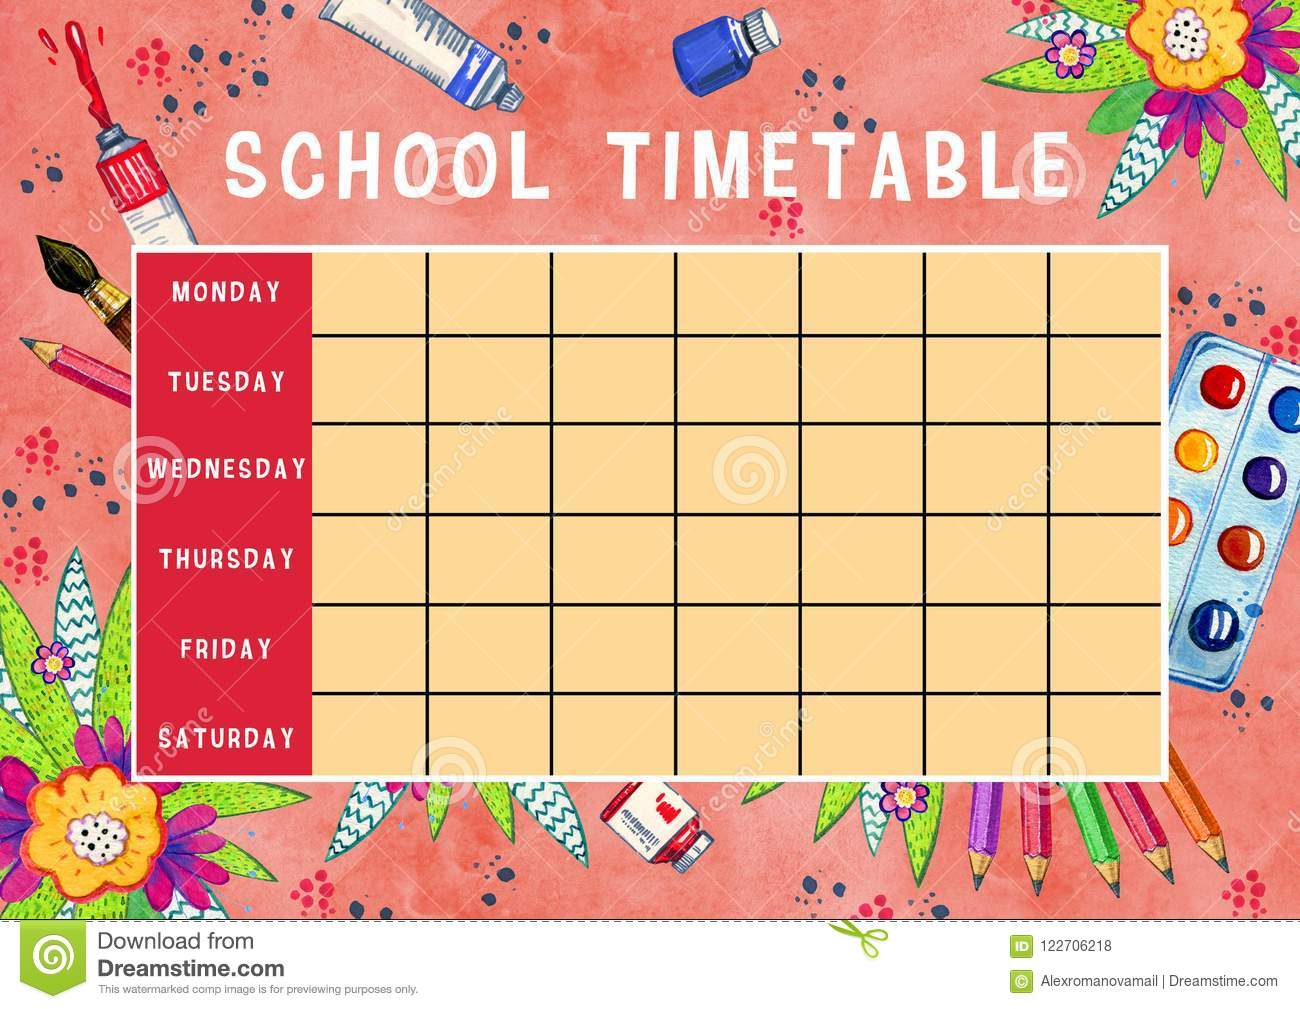 template of school timetable with days of week and free